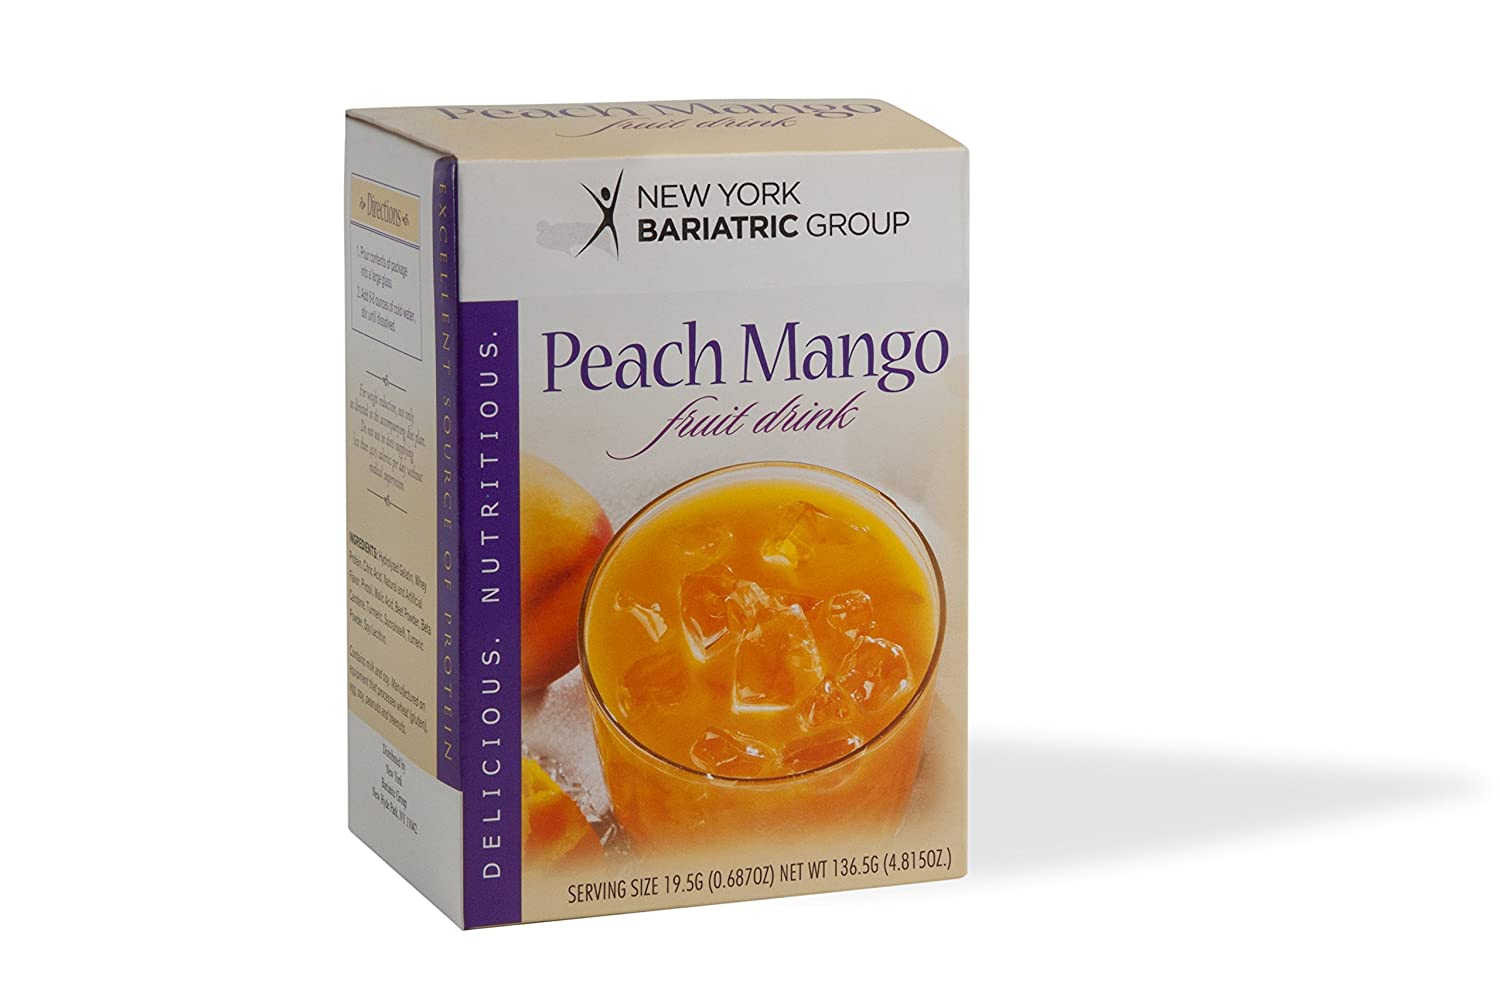 New York Bariatric Group Protein Fruit Drinks - Peach Mango - 15g Protein - Low Carb Diet Drink - Low Calorie- Fat Free - Sugar Free